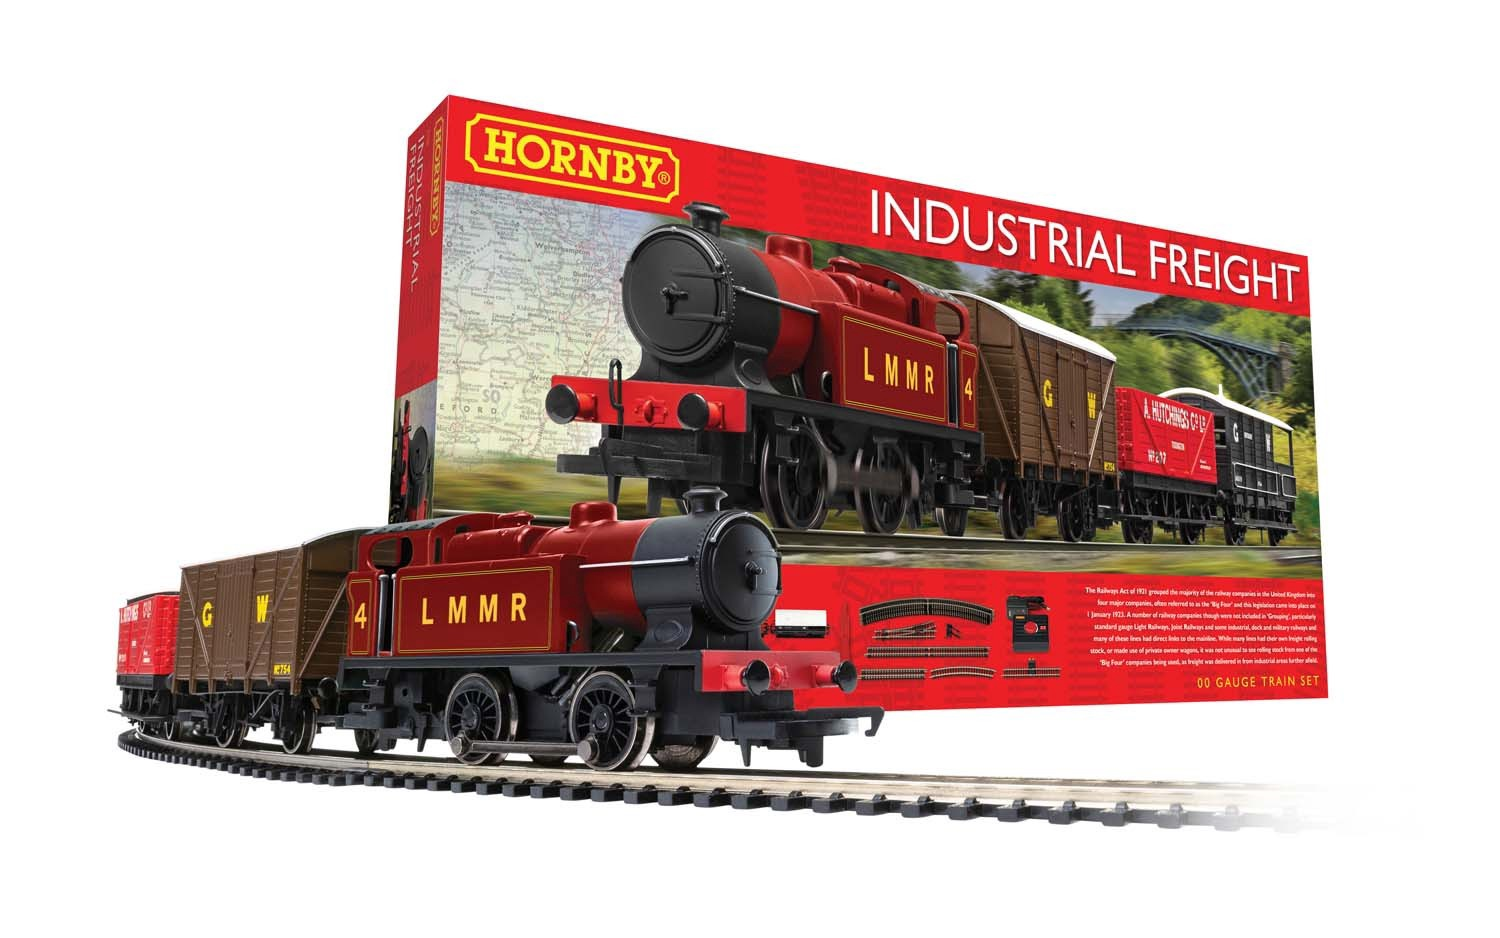 Hornby #R1228 Industrial Freight Train Set